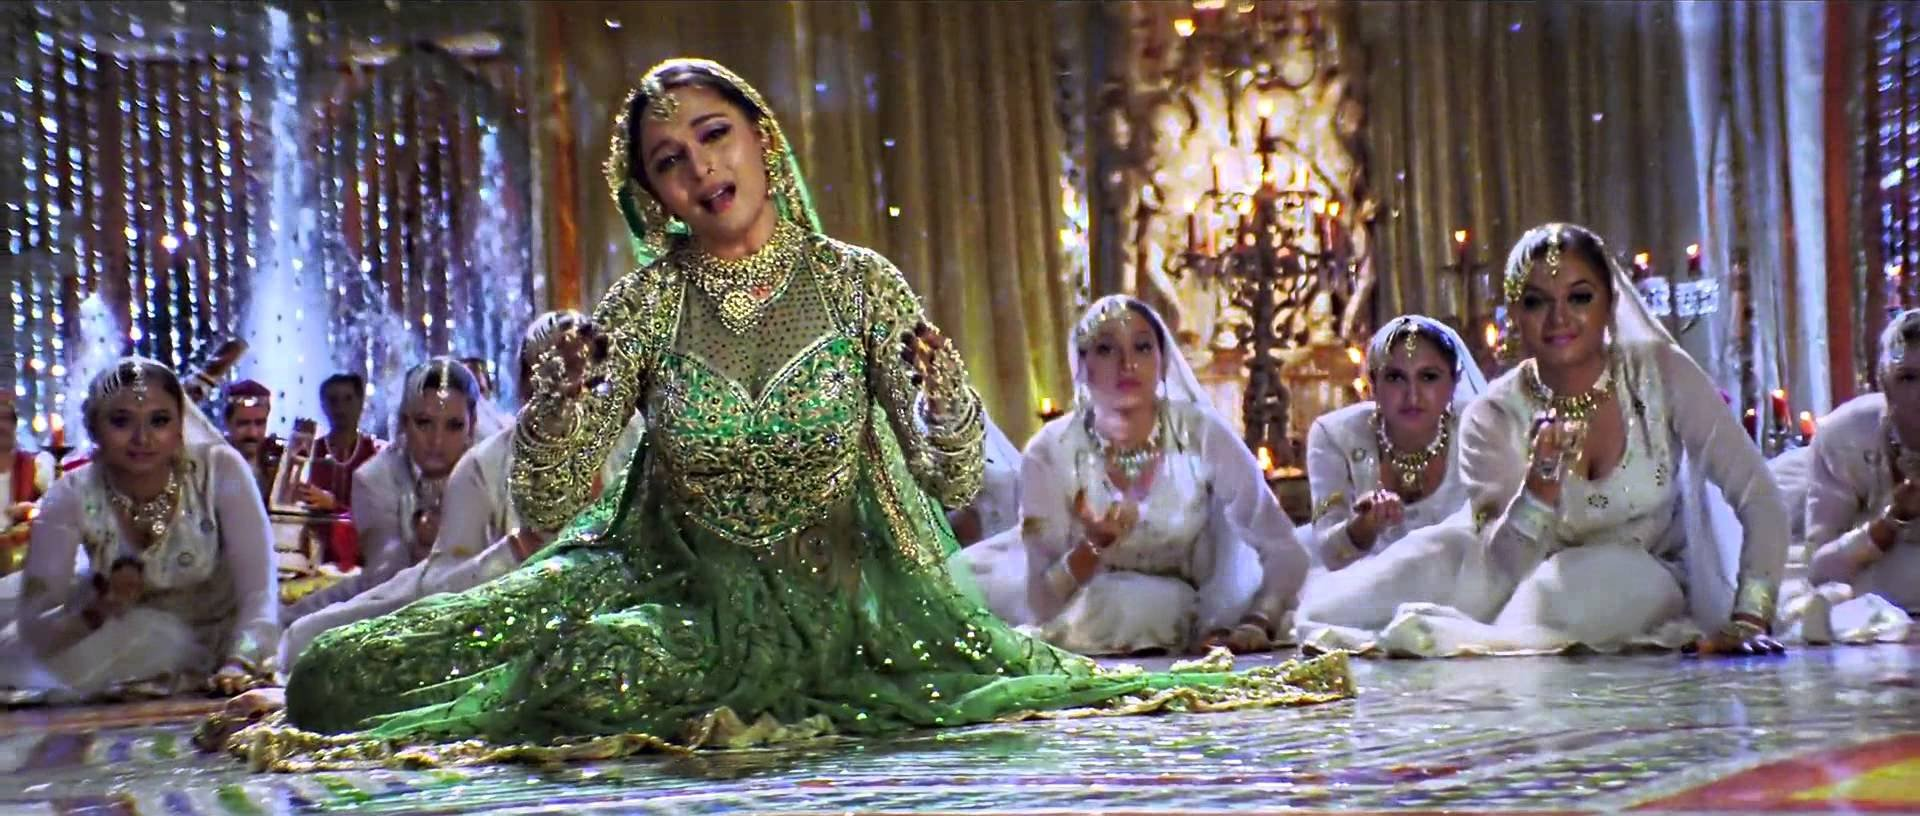 Madhuri Dixit's lehenga in the song, 'Maar Daala' from Devdas movie, was auctioned and the final bid was a whopping ₹ 3 crore.